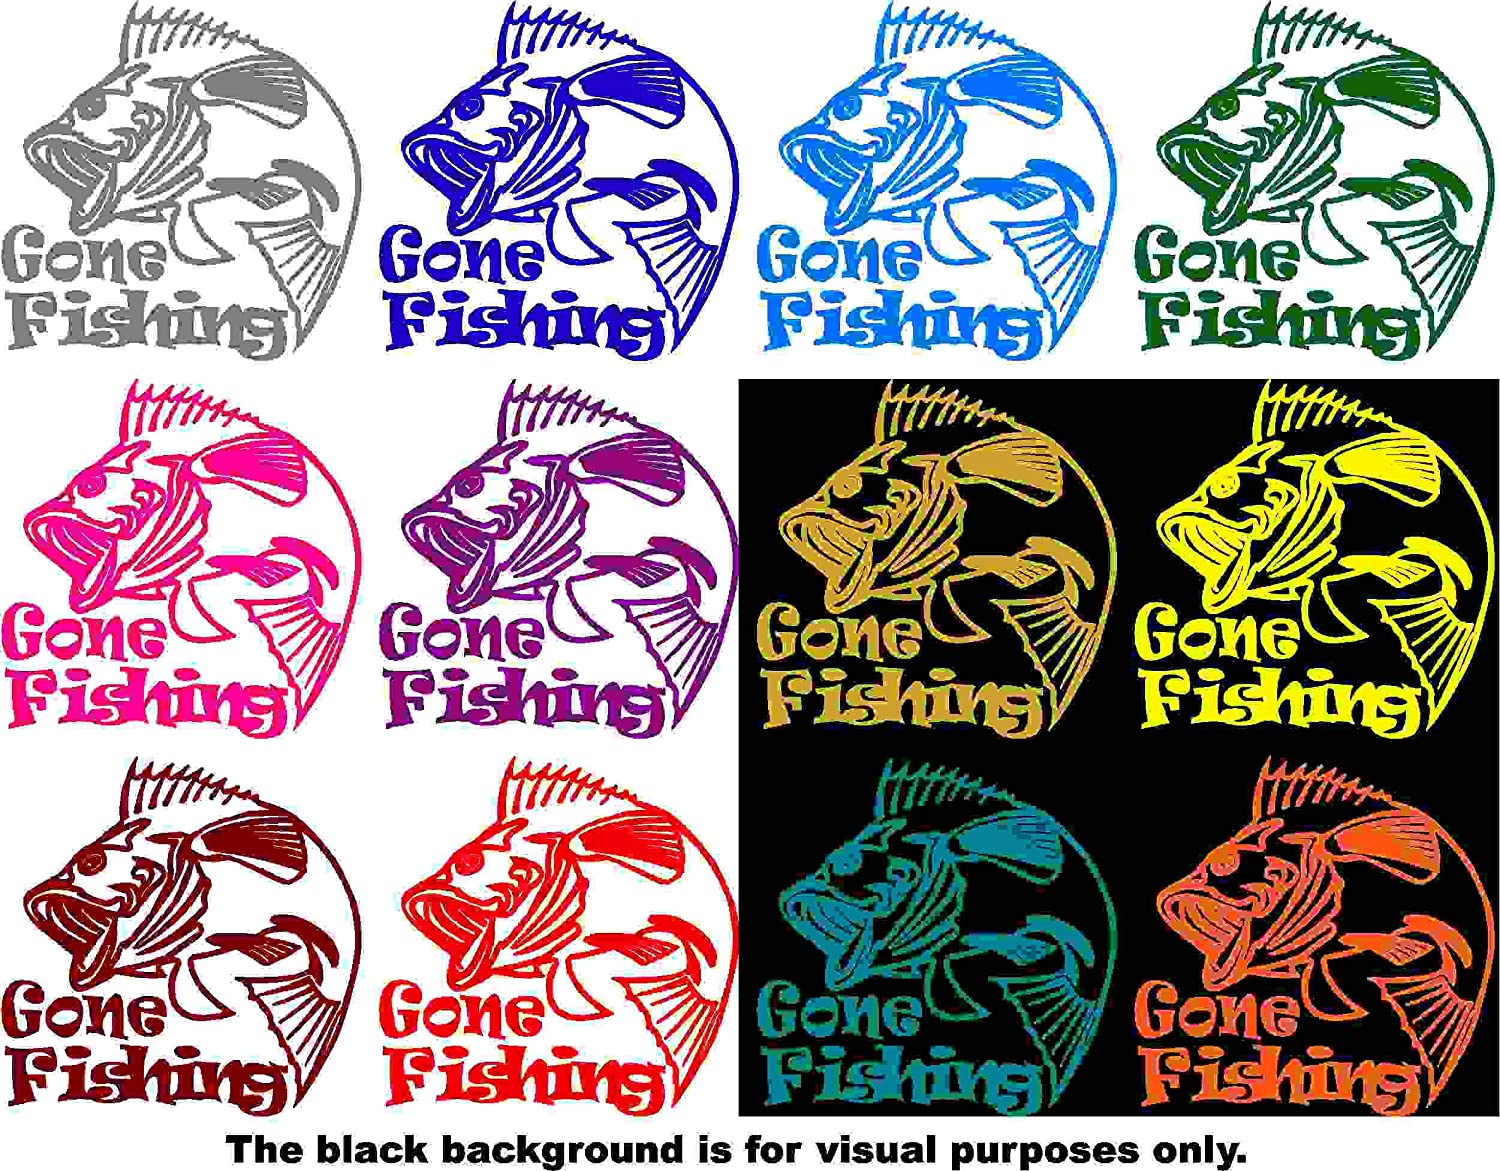 Sports Gone Fishing Bass Decal Sticker Vinyl Car Window Tumblers Wall Laptops Cellphones Phones Tablets Ipads Helmets Motorcycles Computer Towers V and T Gifts